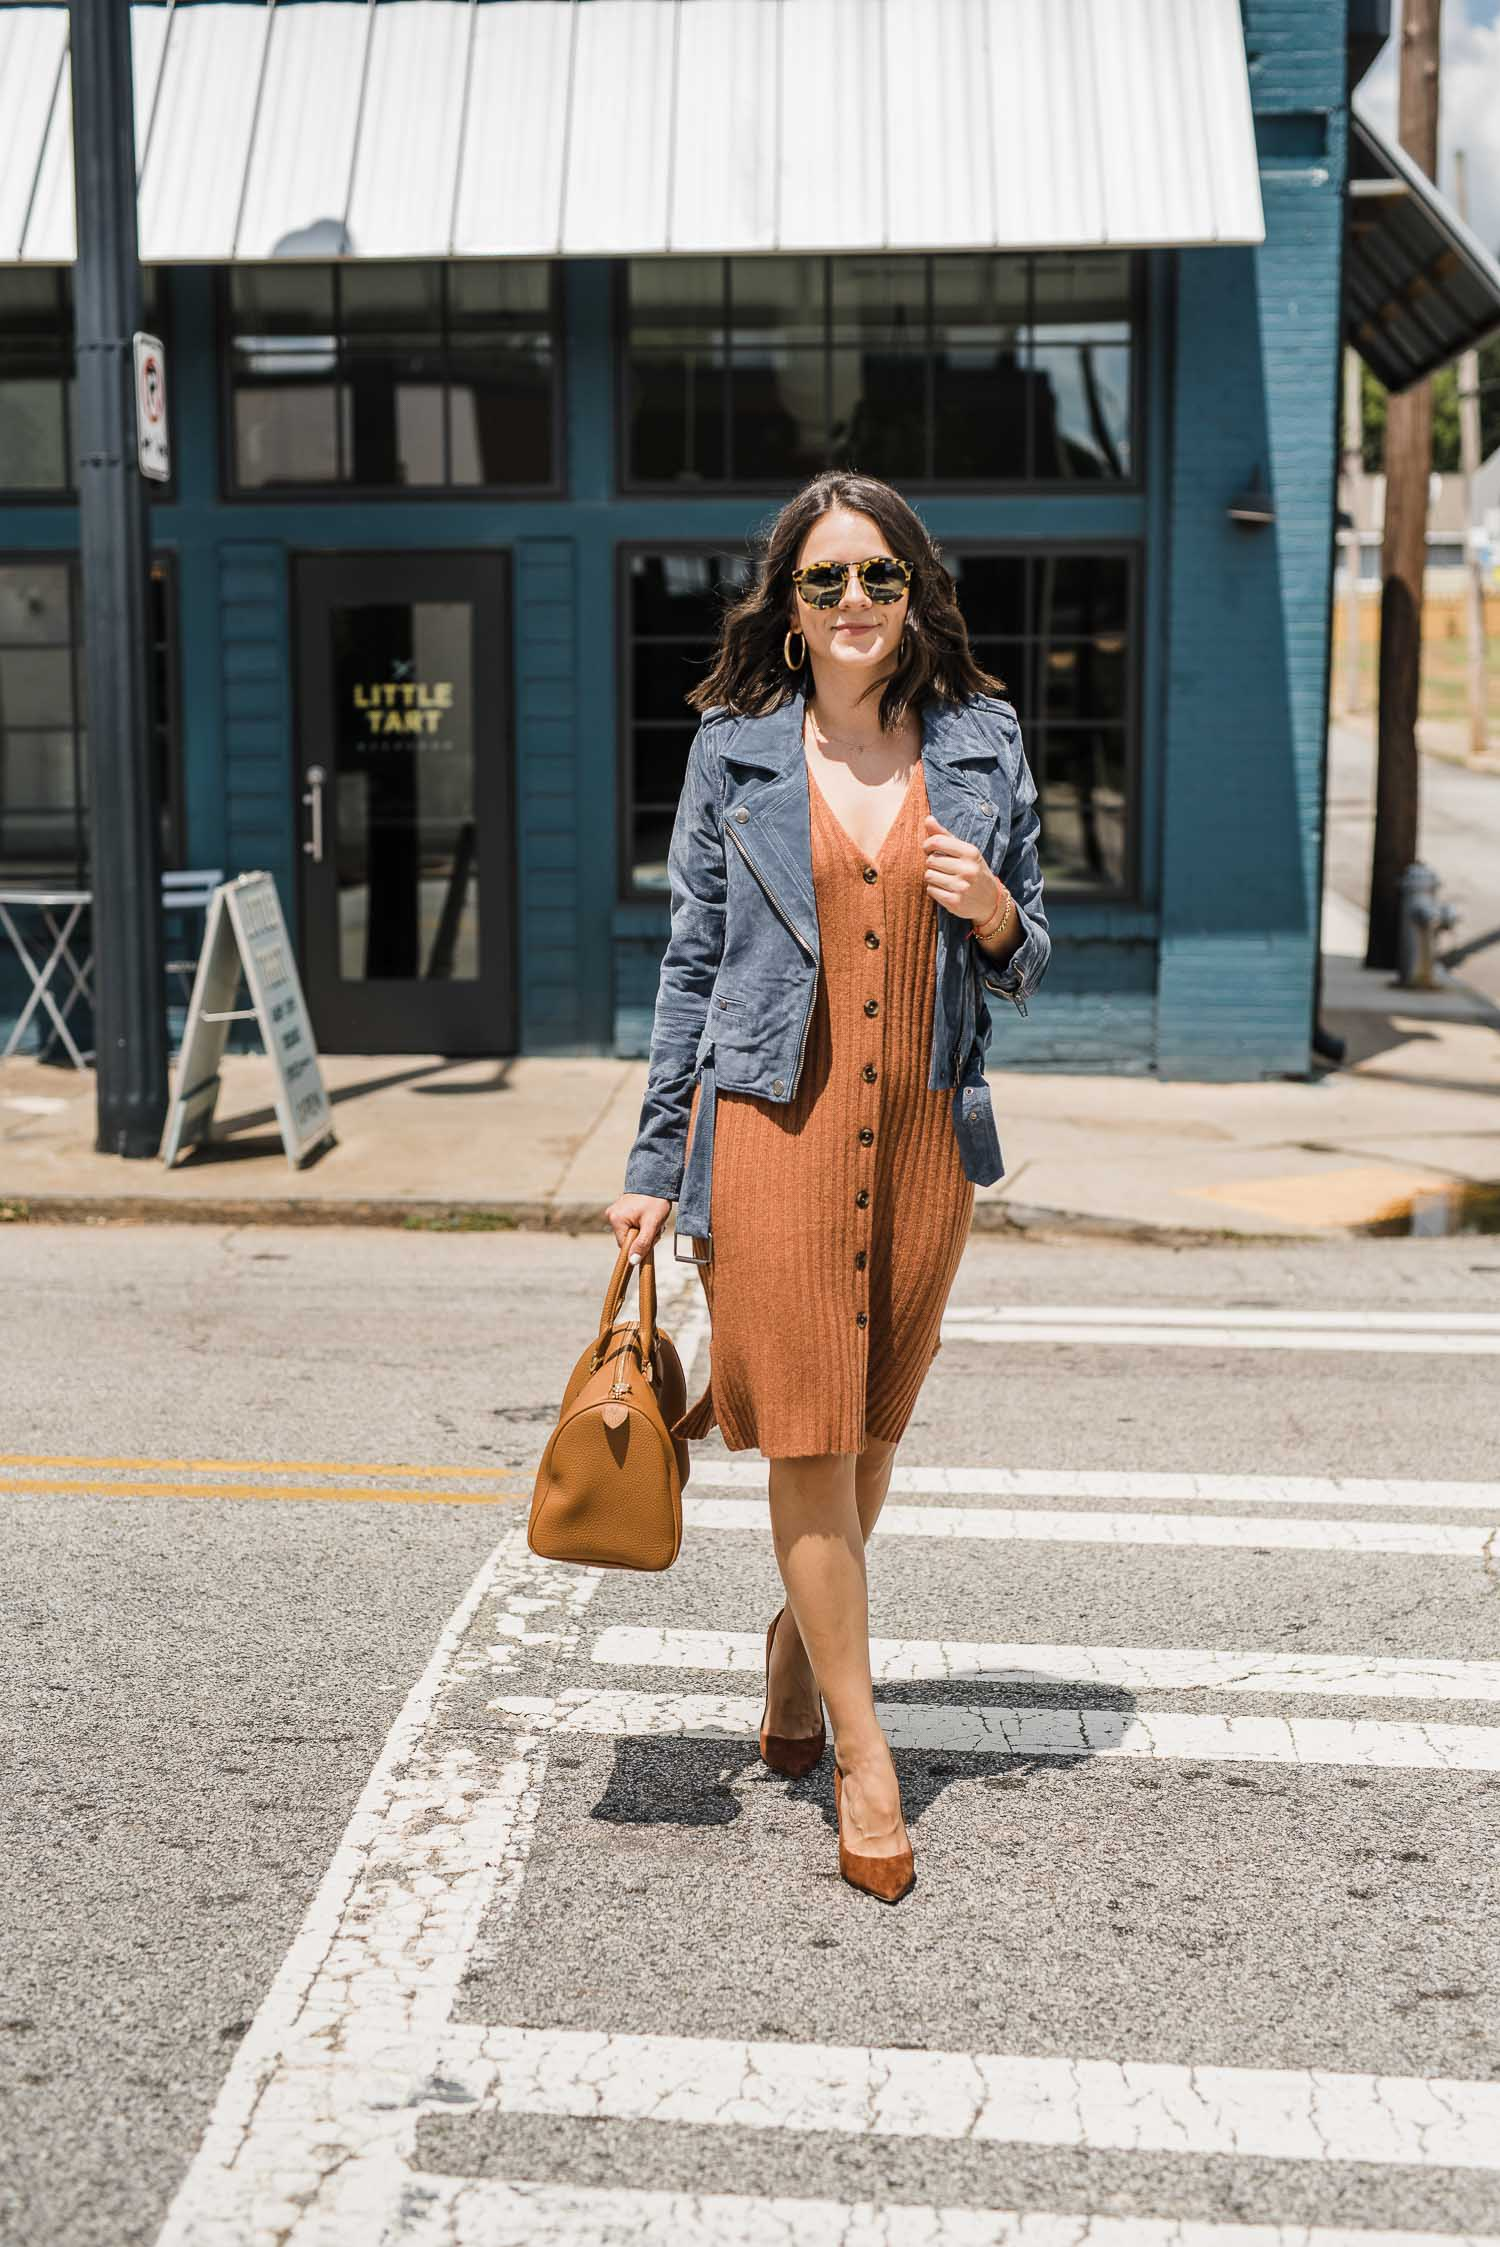 the madewell insider event includes this beige dress, jean jacket, and heels